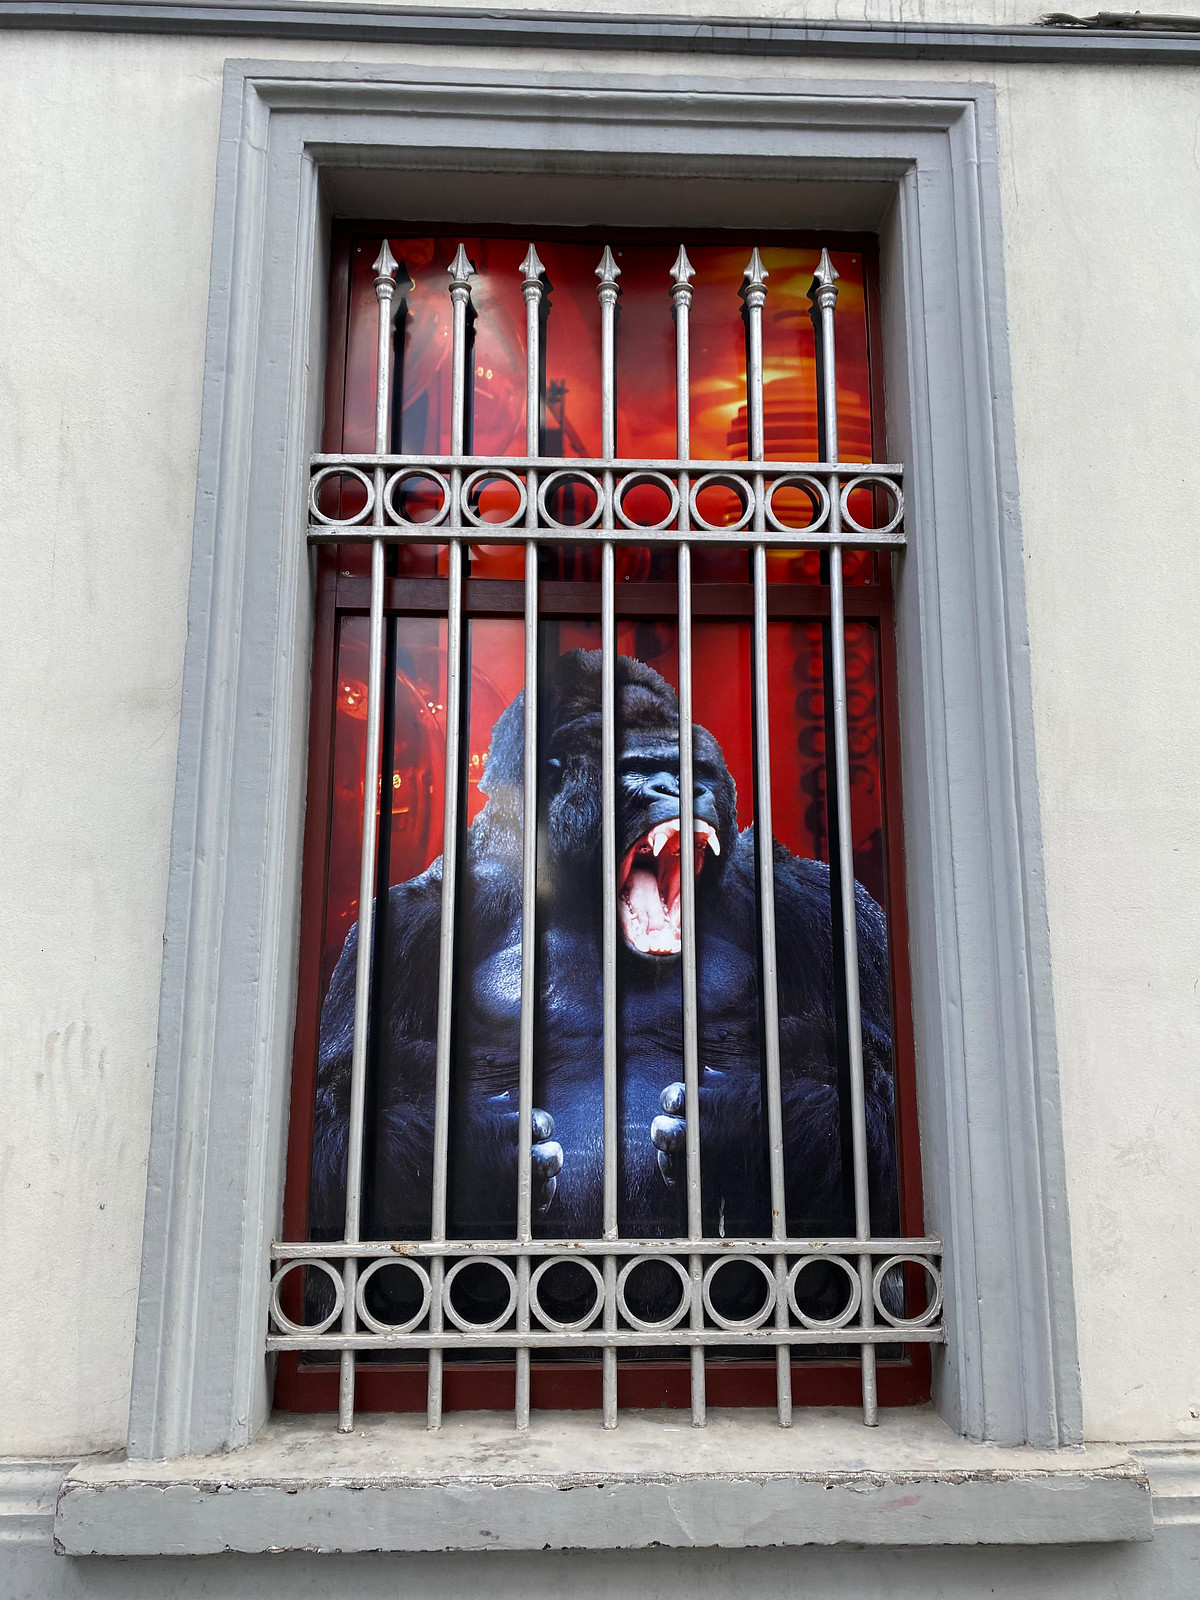 Angry Gorilla in a cage!